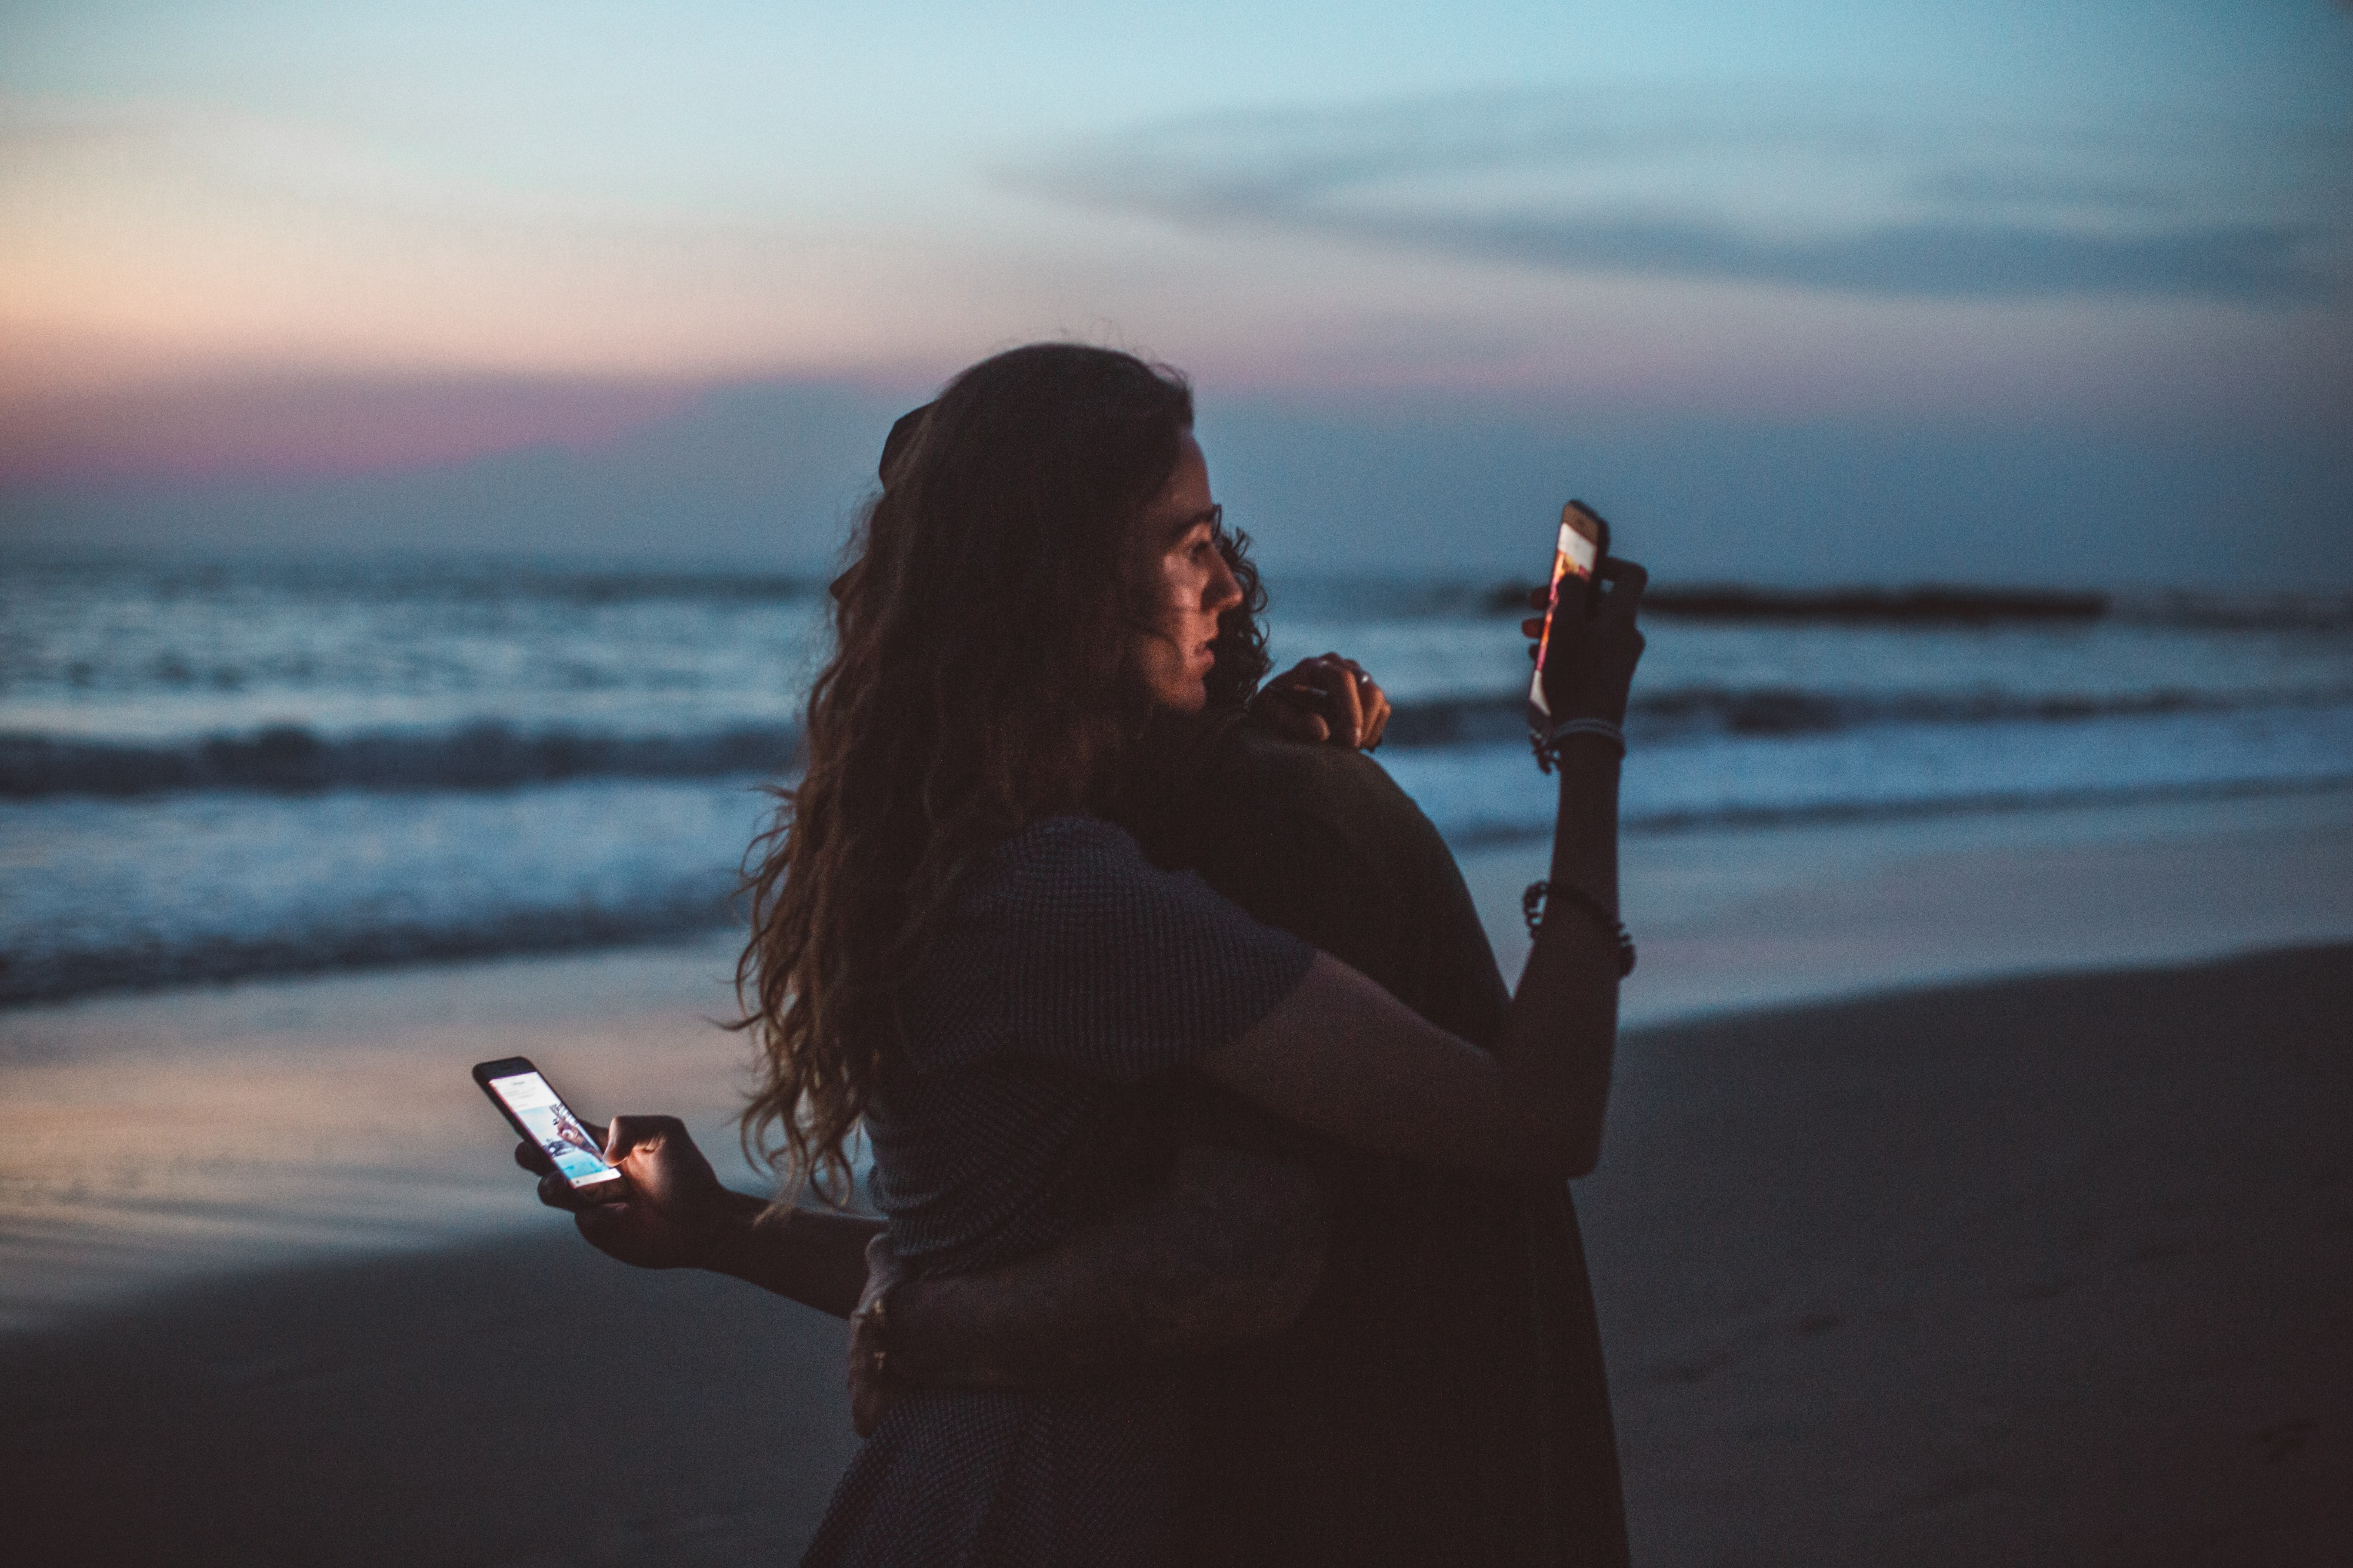 Young couple standing on a sandy beach, taking selfies against a sunset background.